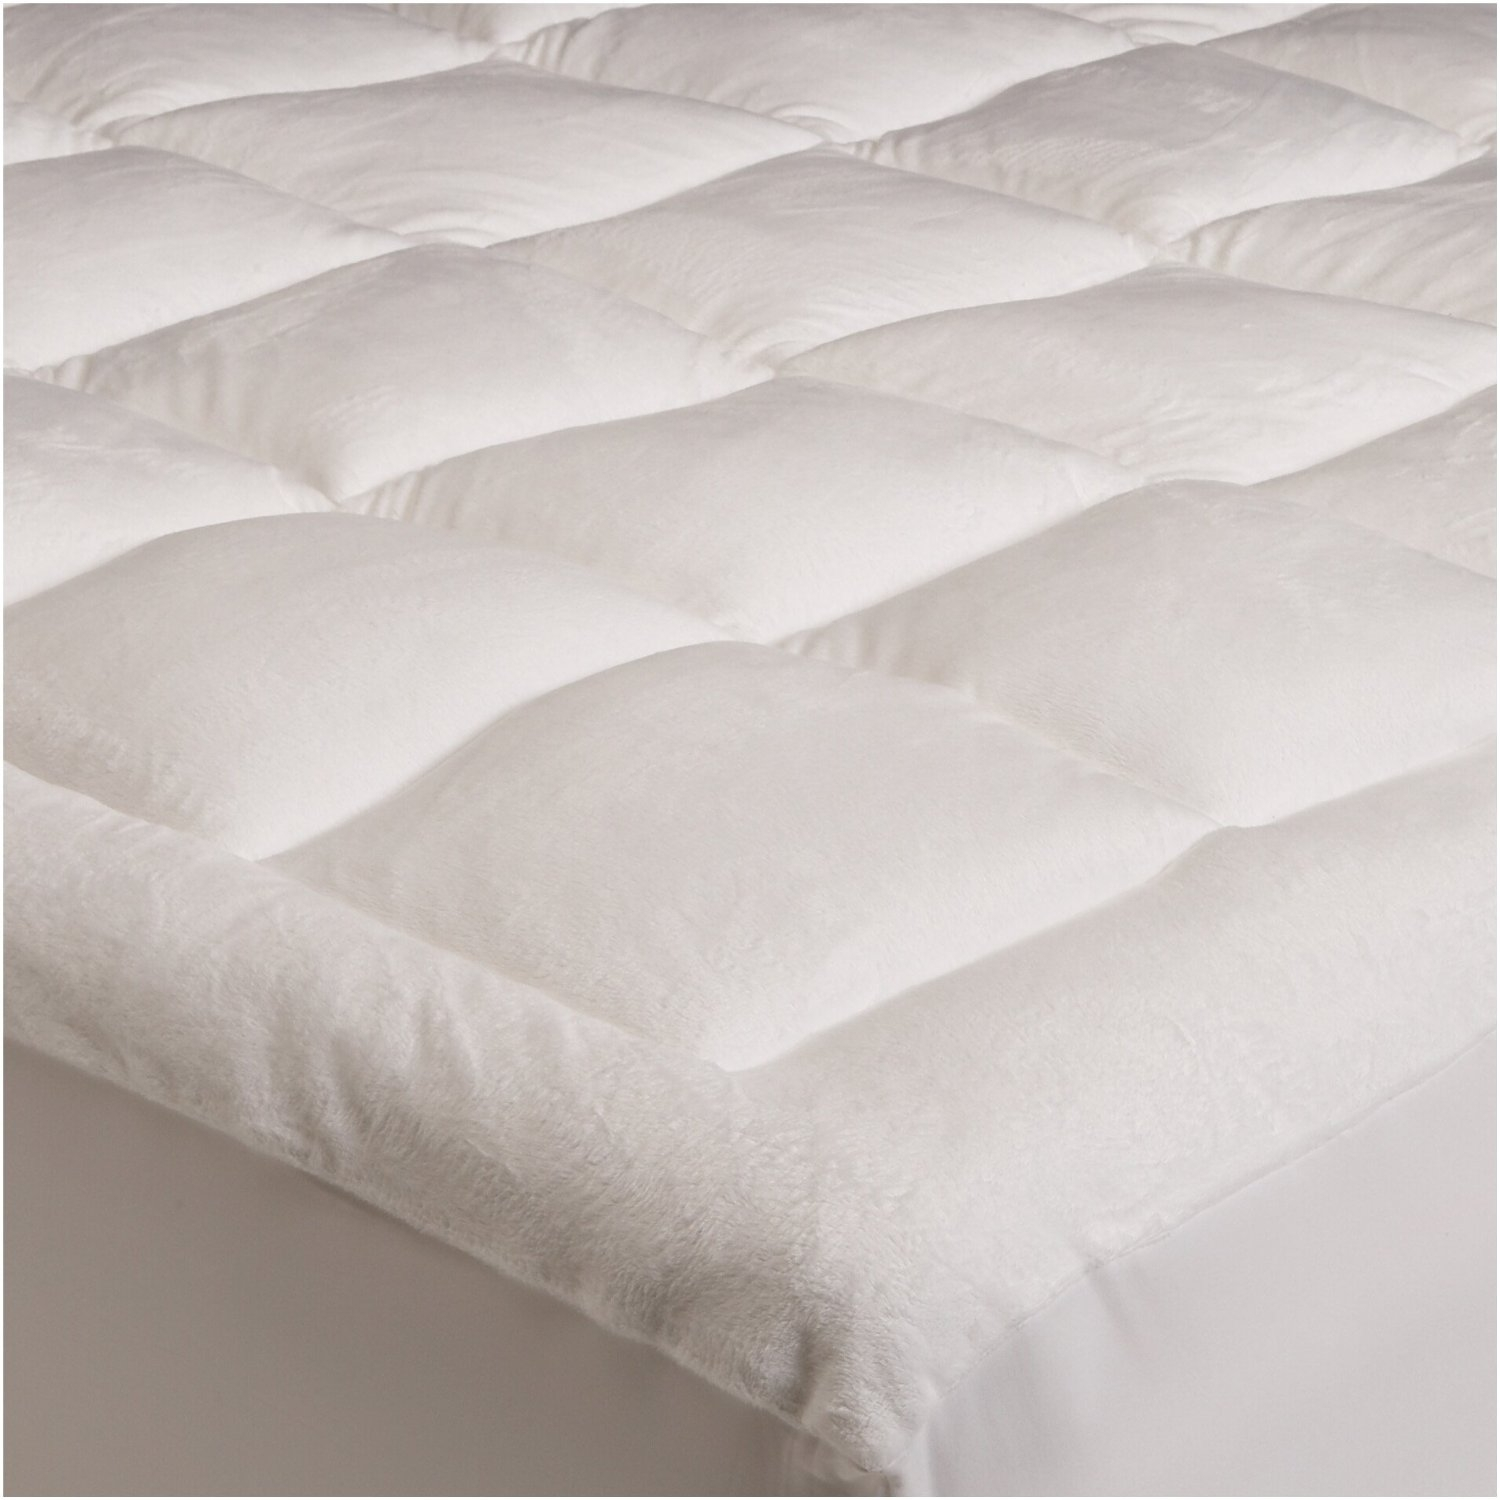 For plush comfort and support, this Twin size Overfilled Super Soft Microplush Mattress Pad features a blend of generous fill and super-soft fabric. Comparable to down in its softness, the pad is made from micro plush fabric and stuffed with 30 ounces of loft-retaining polyester fill. An end-to-end box stitch design ensures even distribution of the fill, and mitered borders prevent shifting and flat spots. Sewn with deep pockets and a fully elasticized edge, the pad doubles as a mattress topper and a mattress protector, and it fits deep mattresses like pillow-tops. Comes in a choice of sizes for outfitting every bed in house.